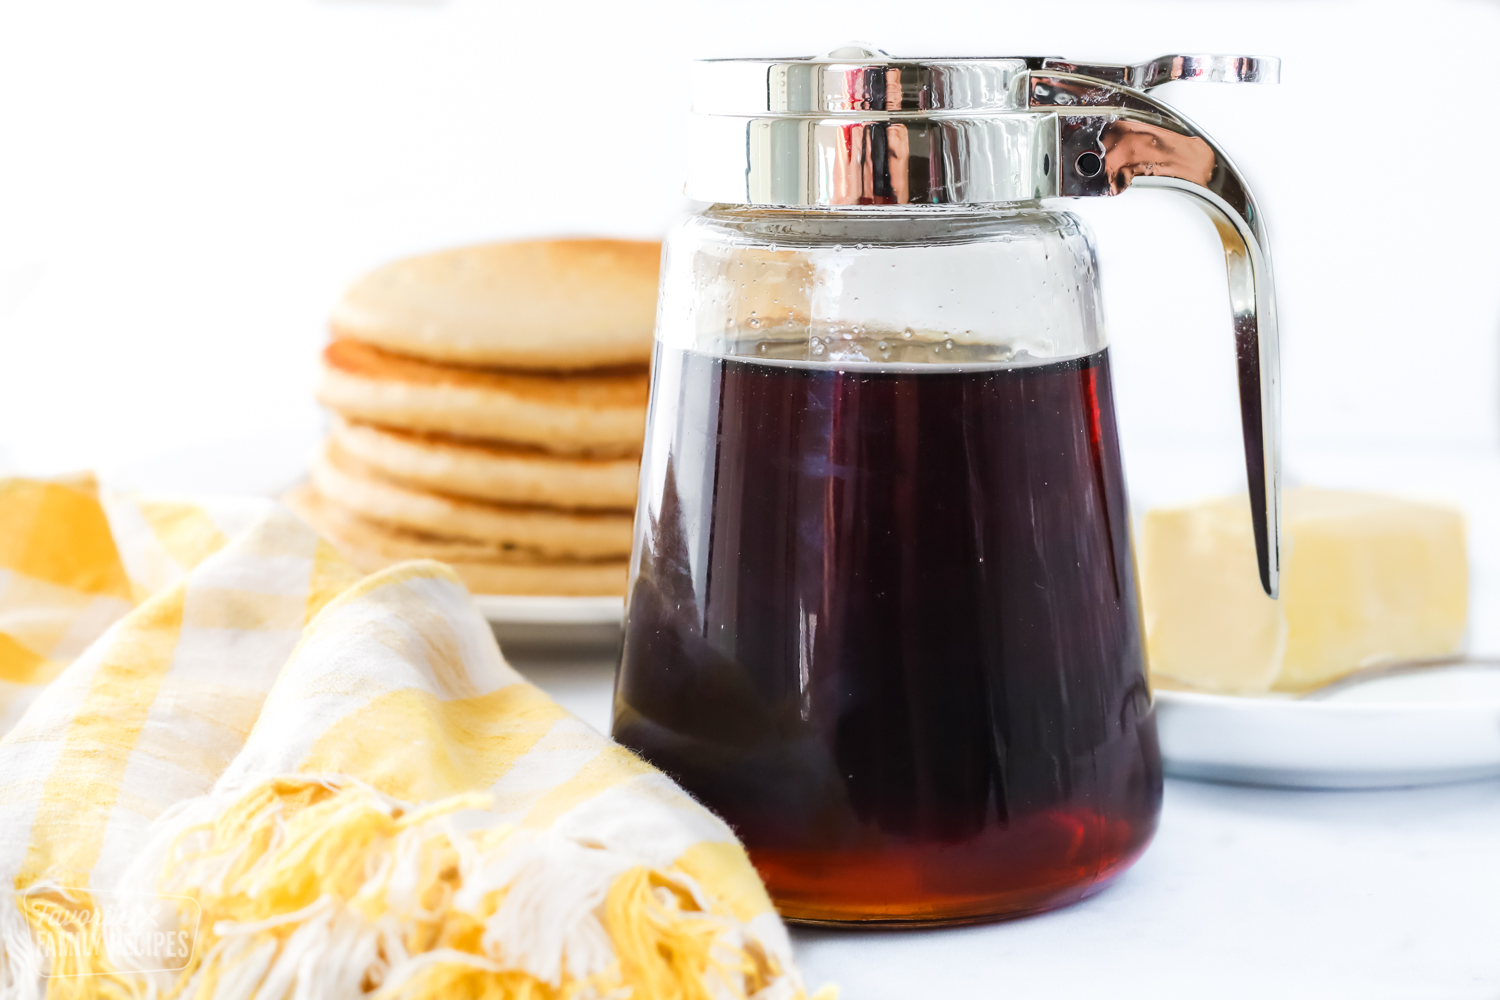 A jar of homemade syrup next to a stack of pancakes and a stick of butter